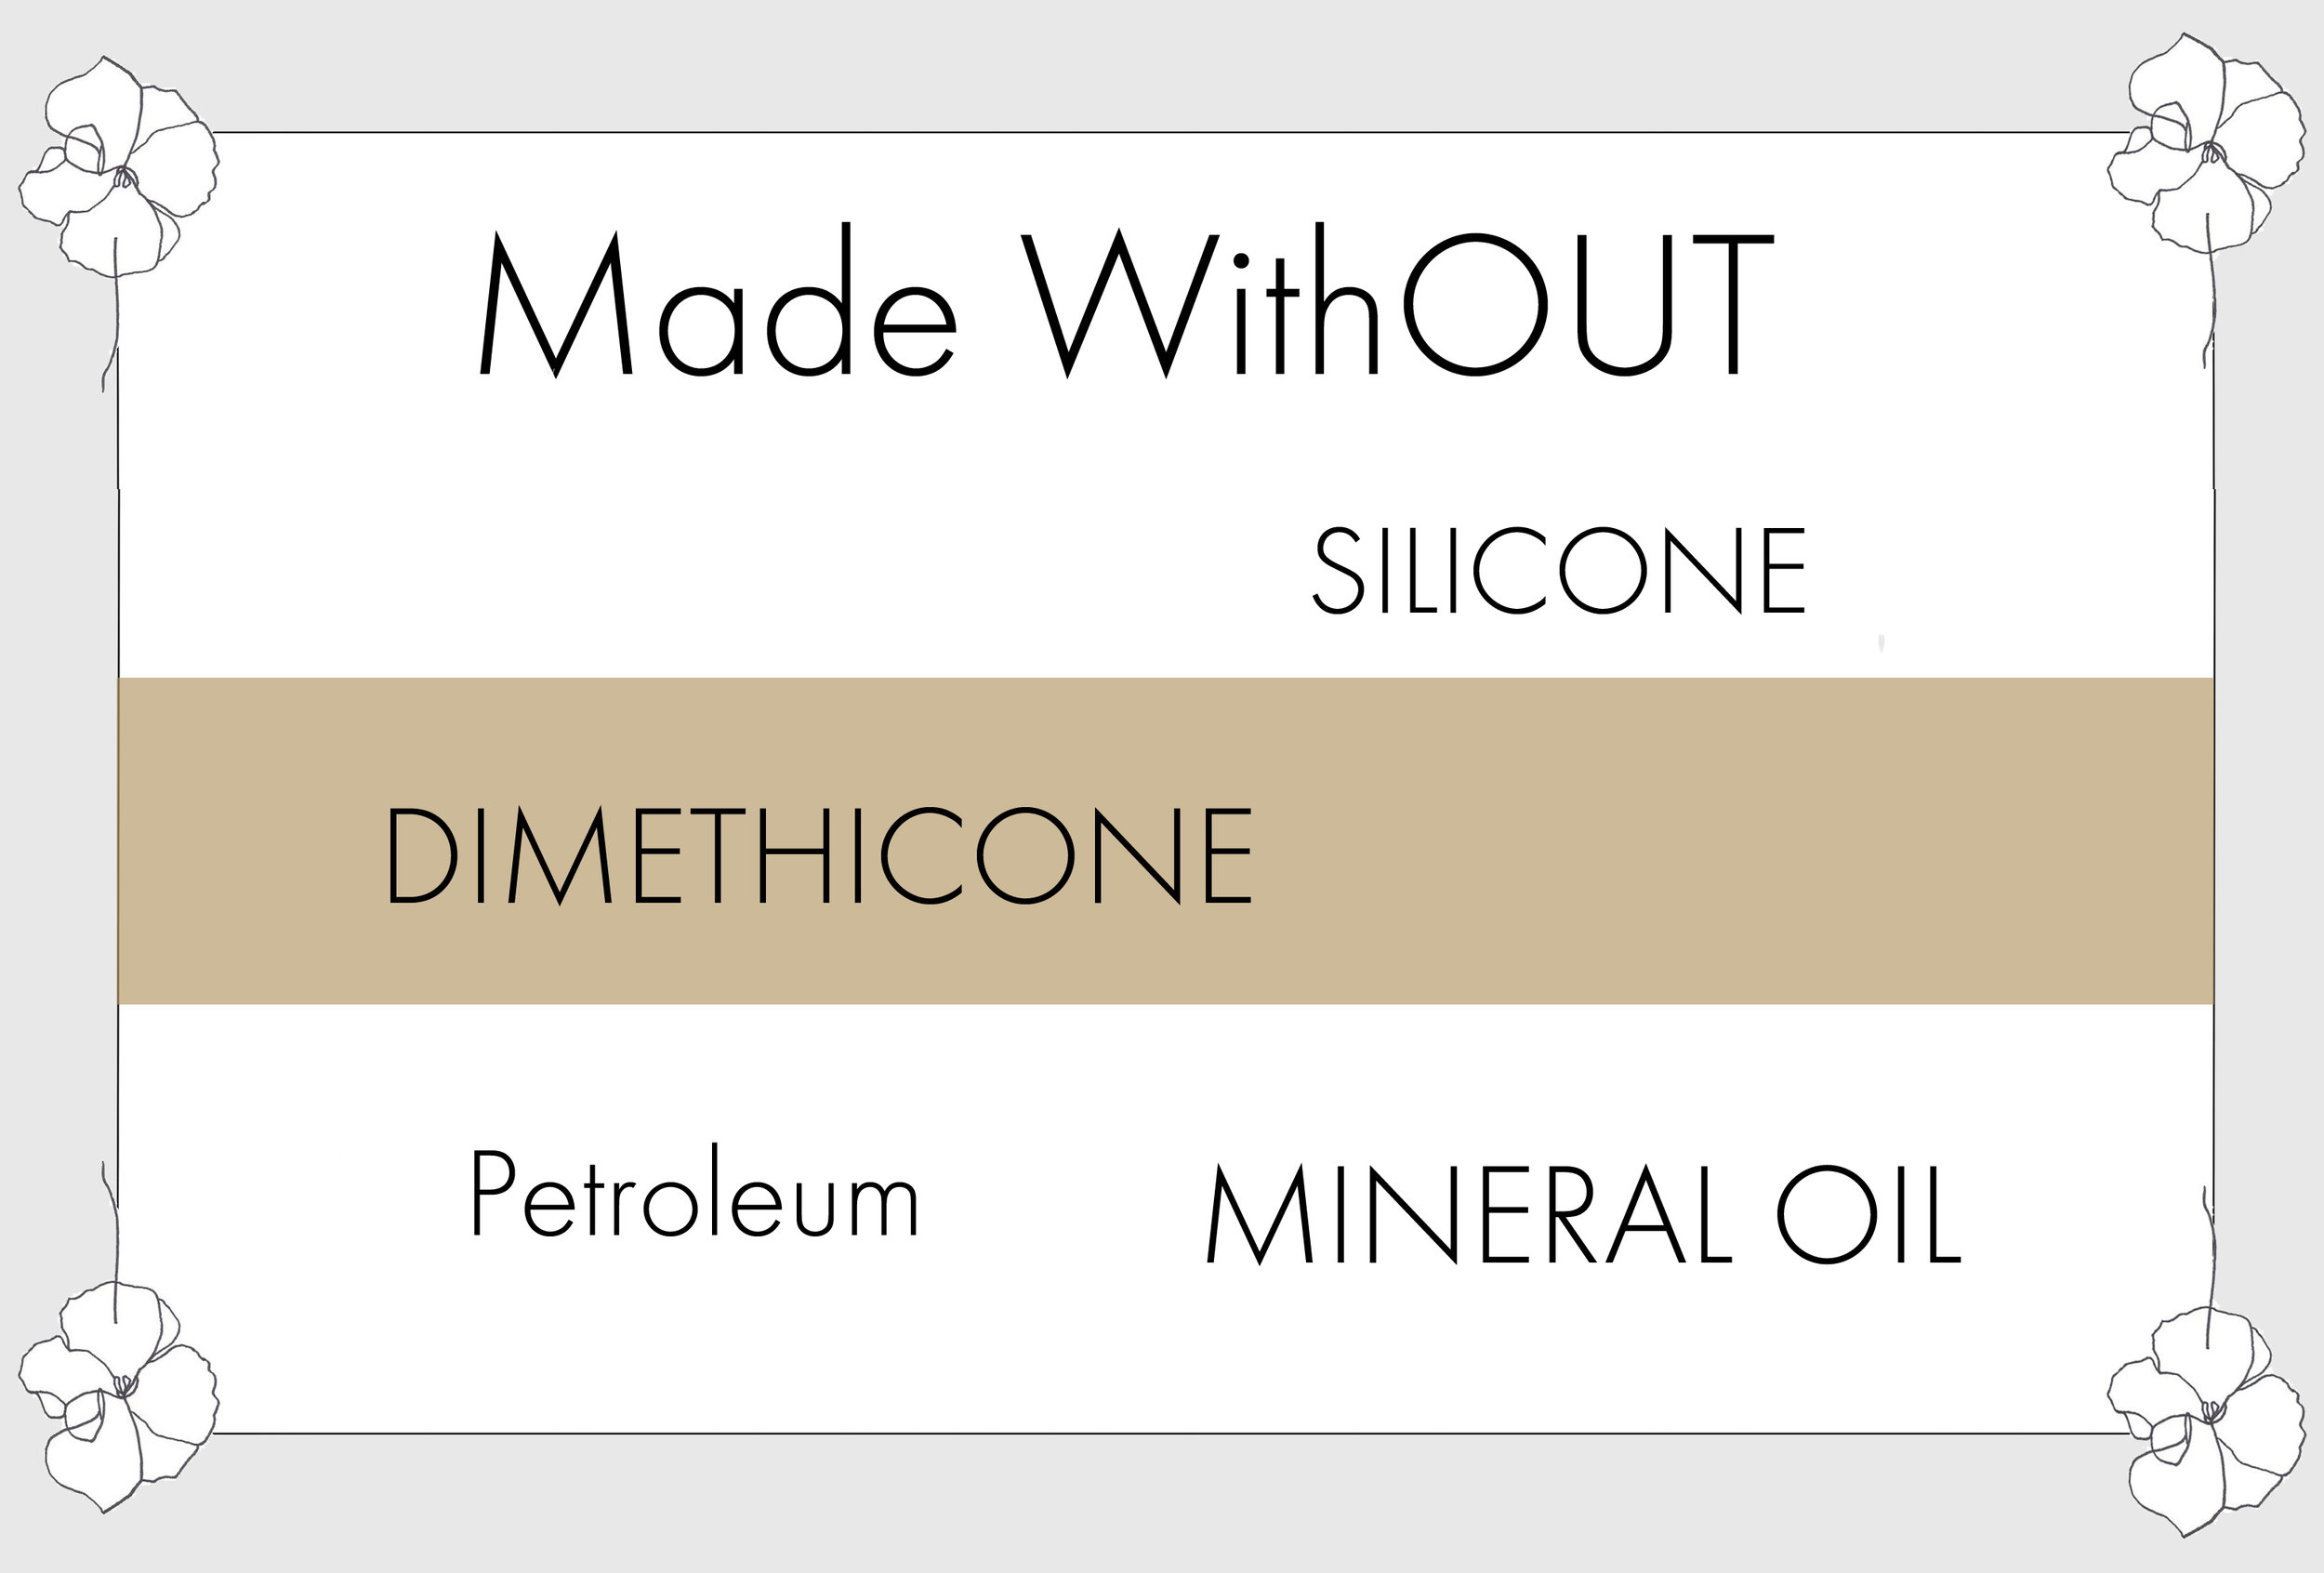 1 MADE WITHOUT SILCONES DIAMETHCONES MINERAL OIL.jpg